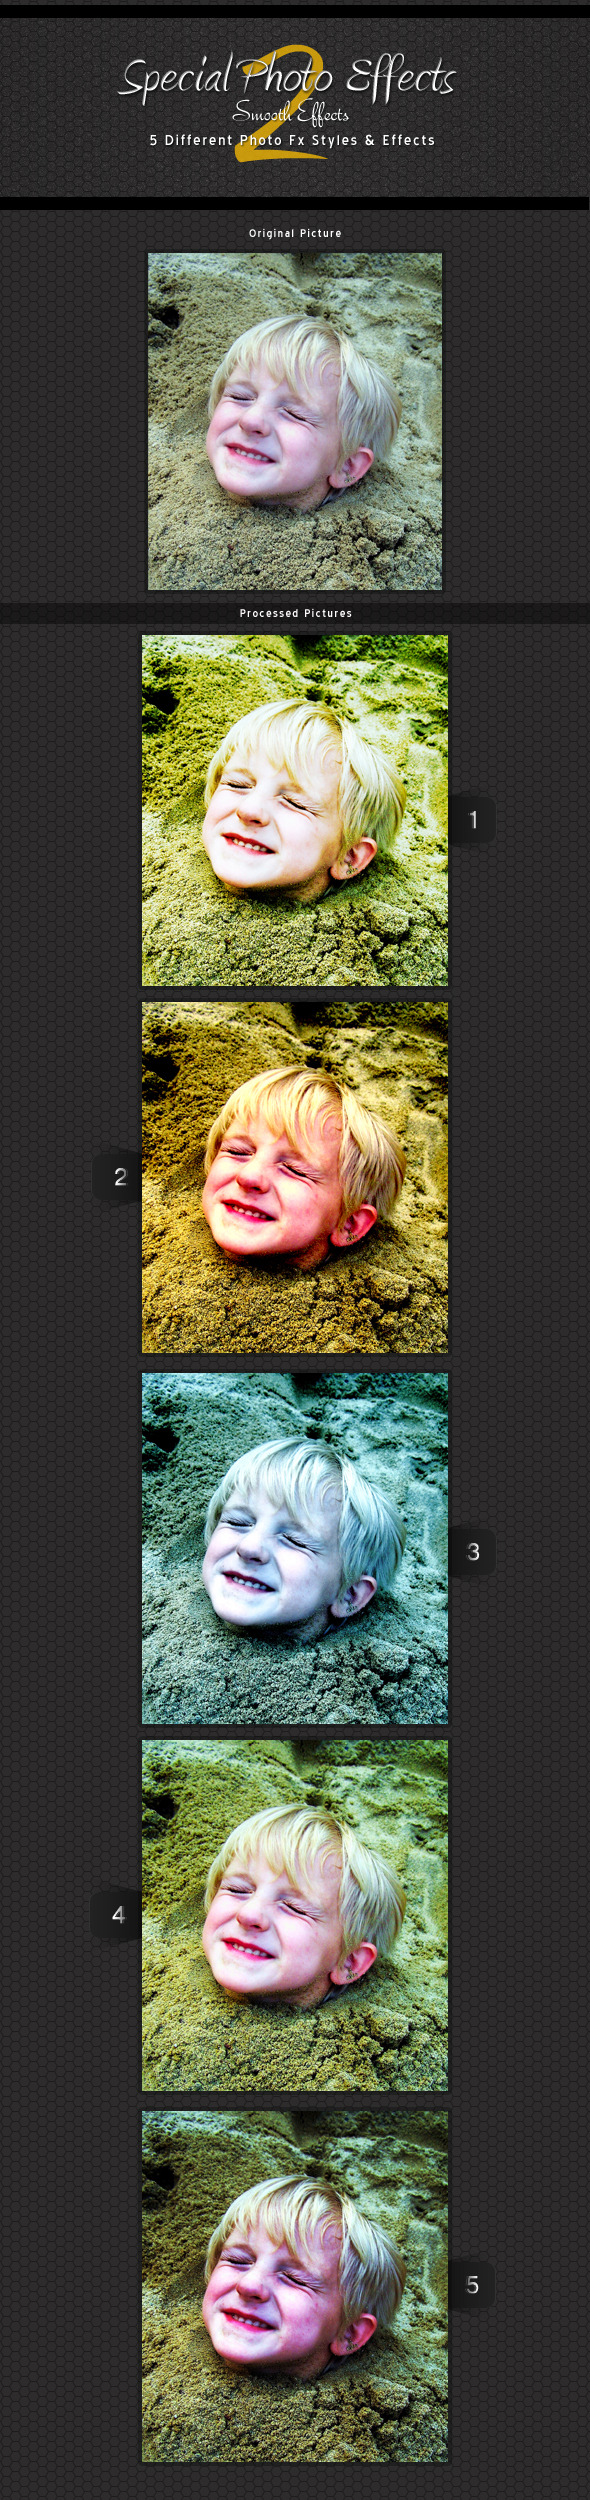 Special Photo Effects 2 - smooth Actions - Photo Effects Actions